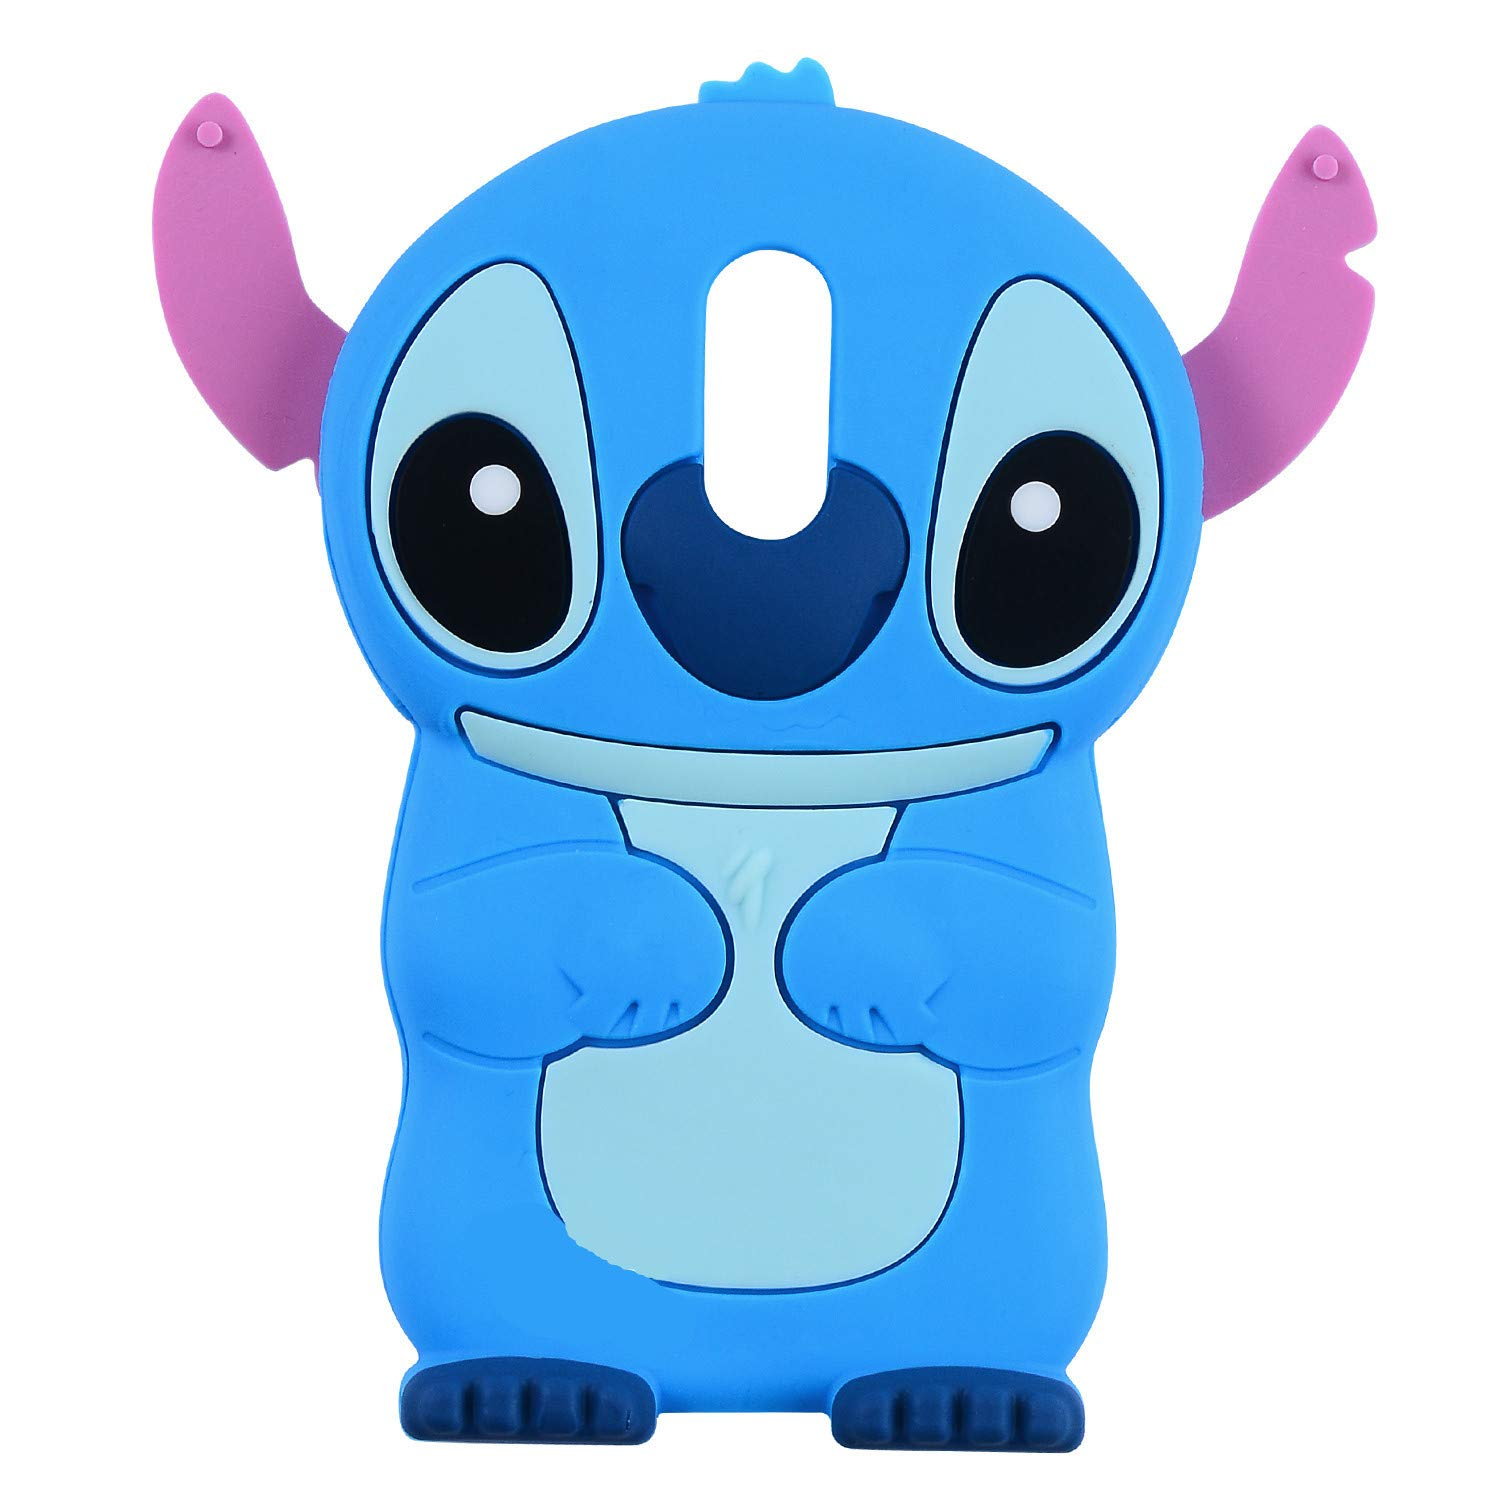 Blue Stitch Case for LG Stylo 4,Q Stylus, Stylo 4 Plus,Stylus 4,3D Cartoon Animal Character Unique Design Cute Soft Silicone Kawaii Skin Cover, Funny Cool Cases for Kids Boys Teens Girls (LG Stylo 4)